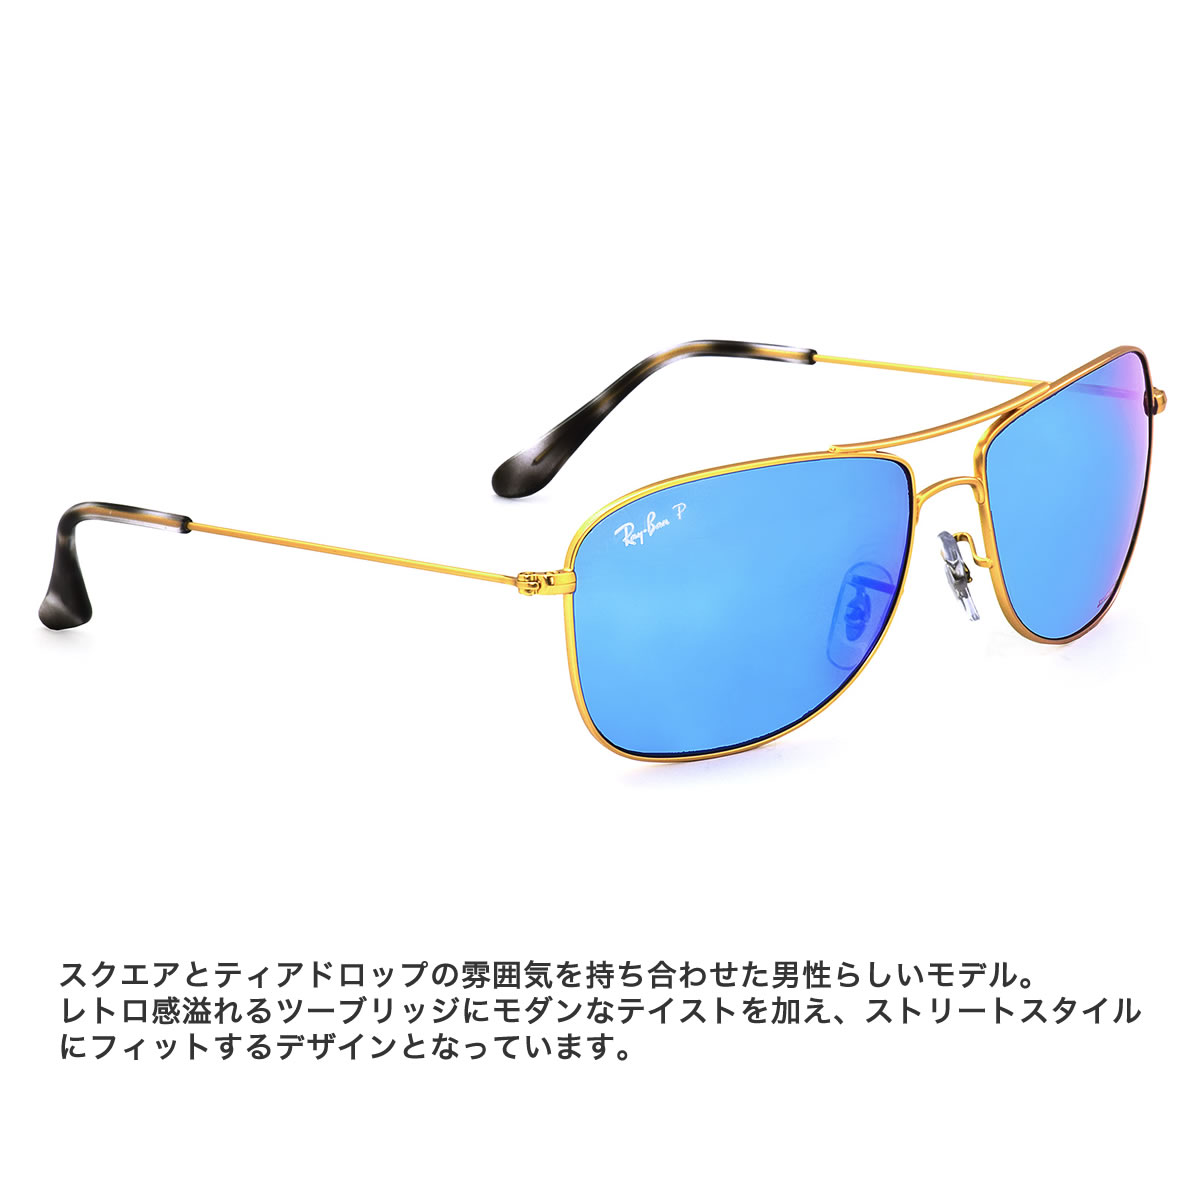 98e1257327c Ray-Ban Sunglasses RB3543 112 A1 59size CHROMANCE GENUINE NEW rayban ray ban